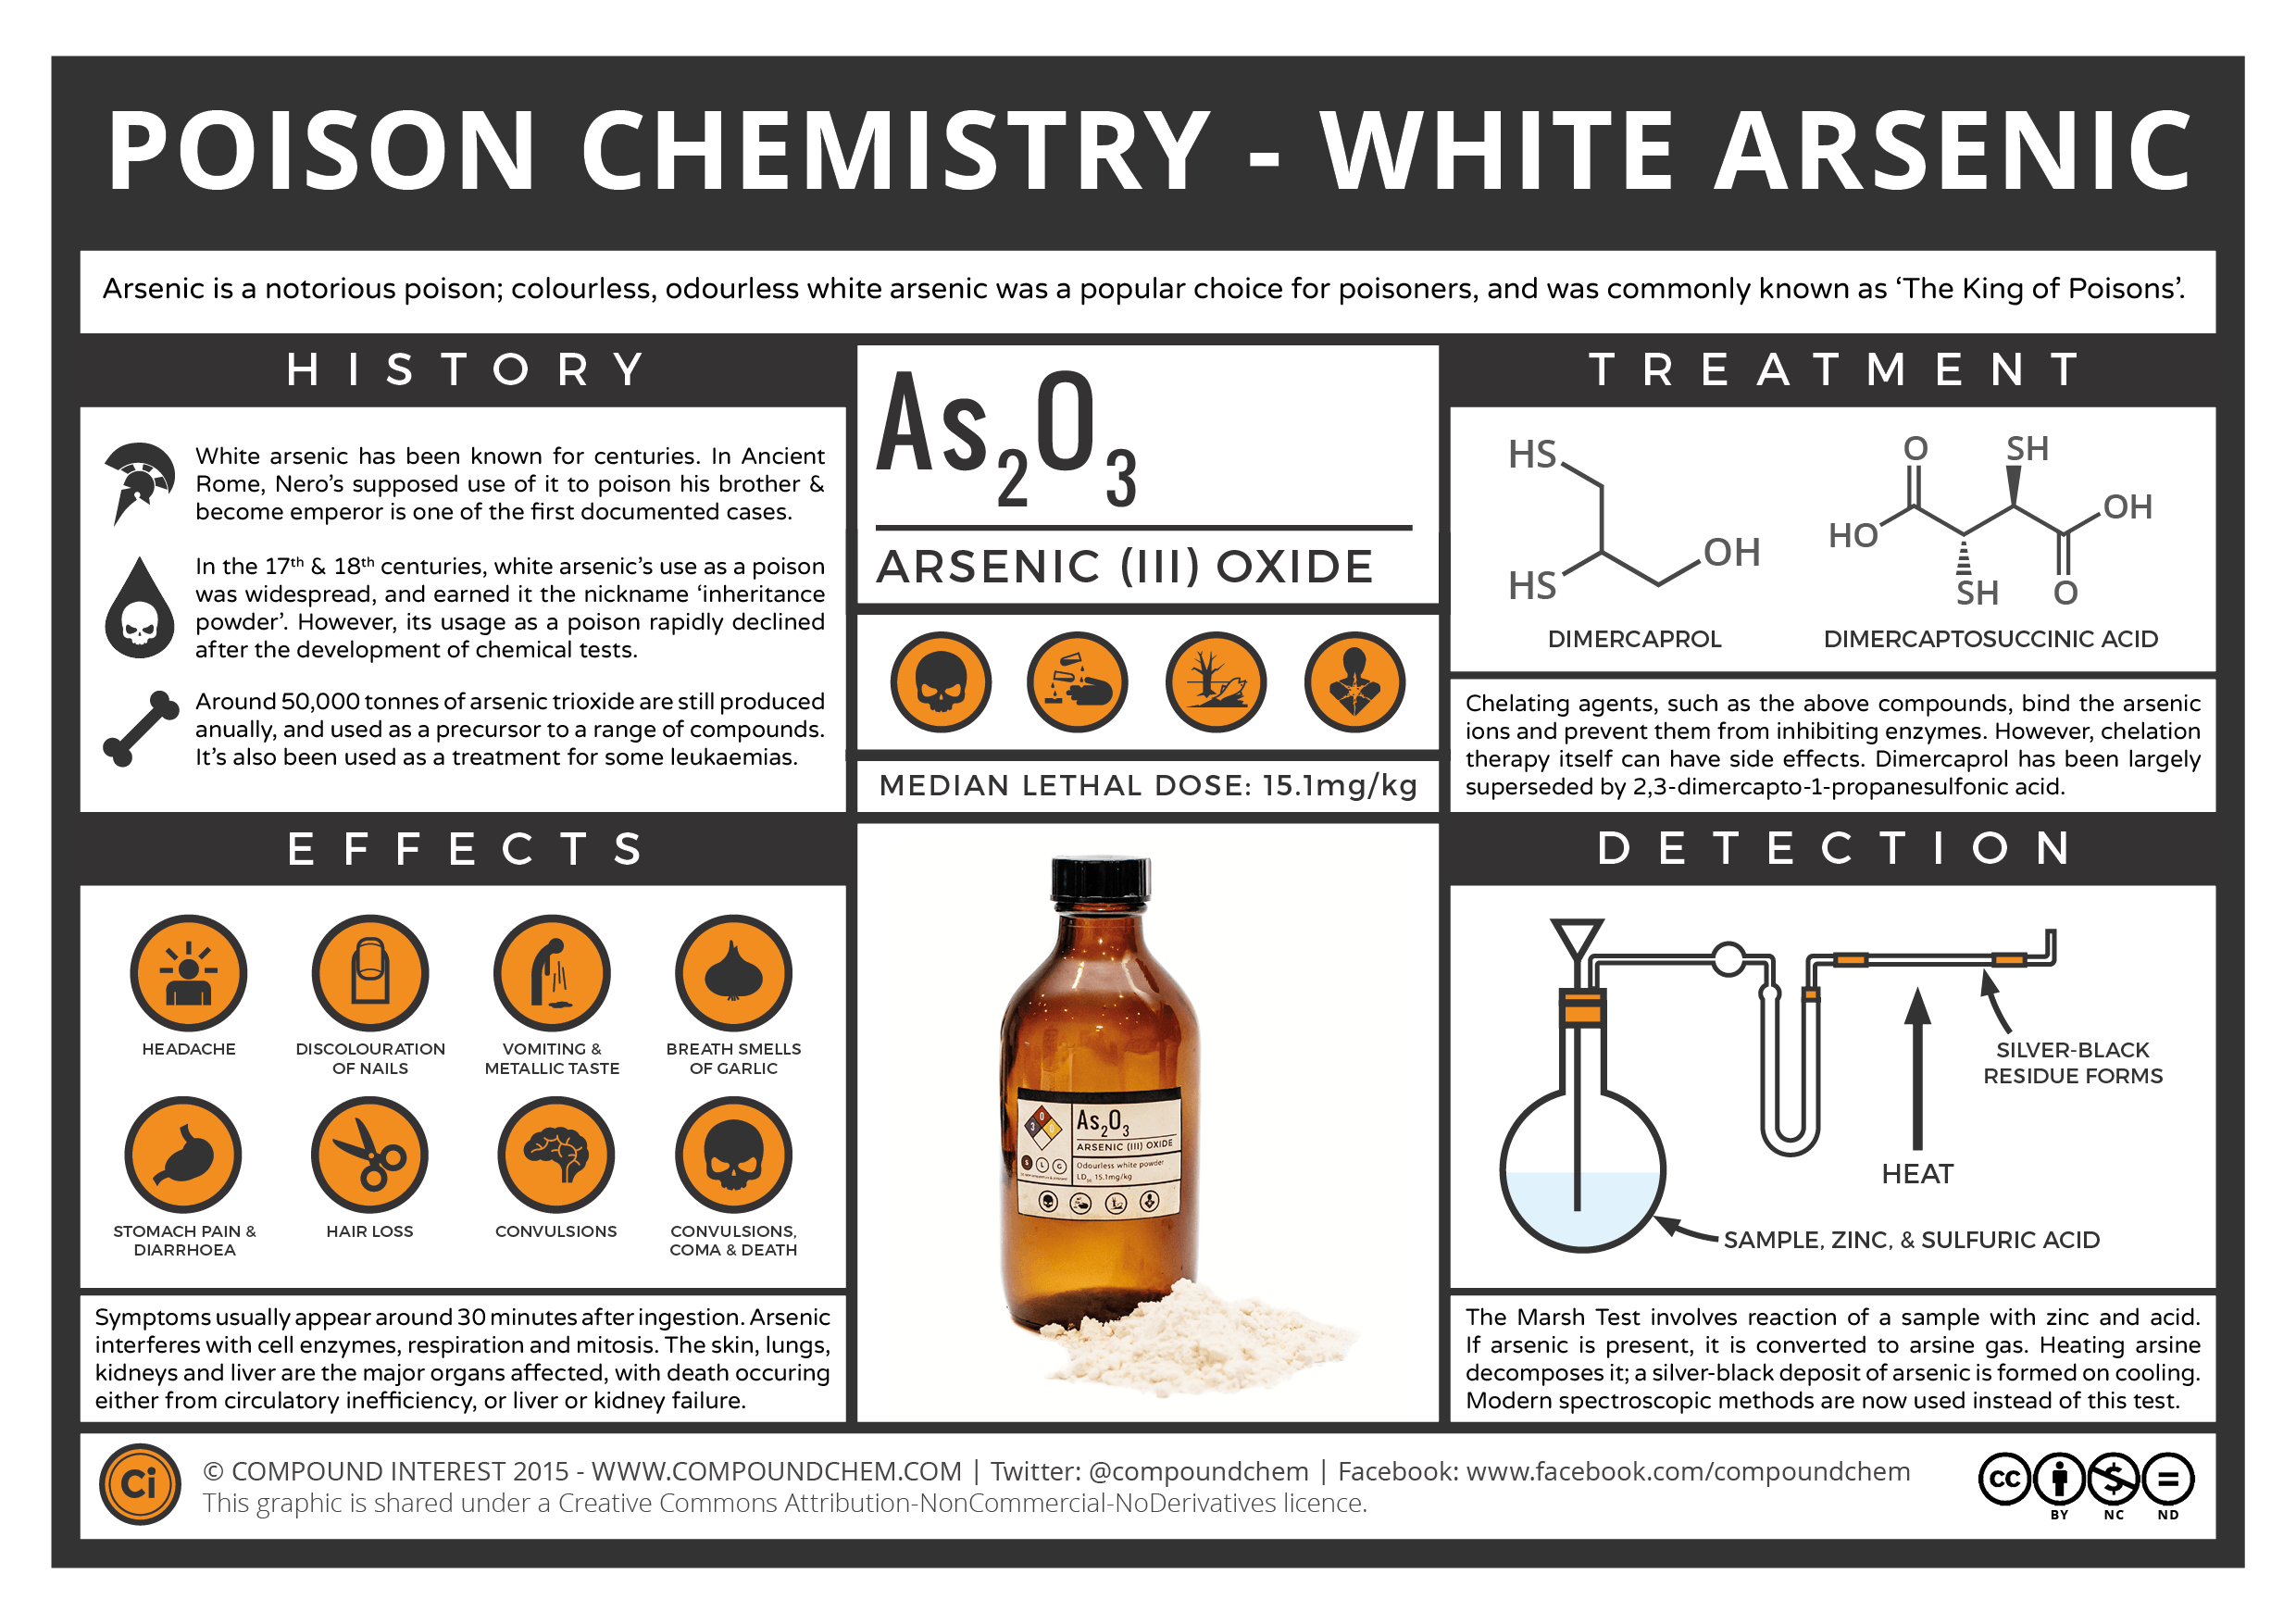 compound interest the chemistry of poisons white arsenic